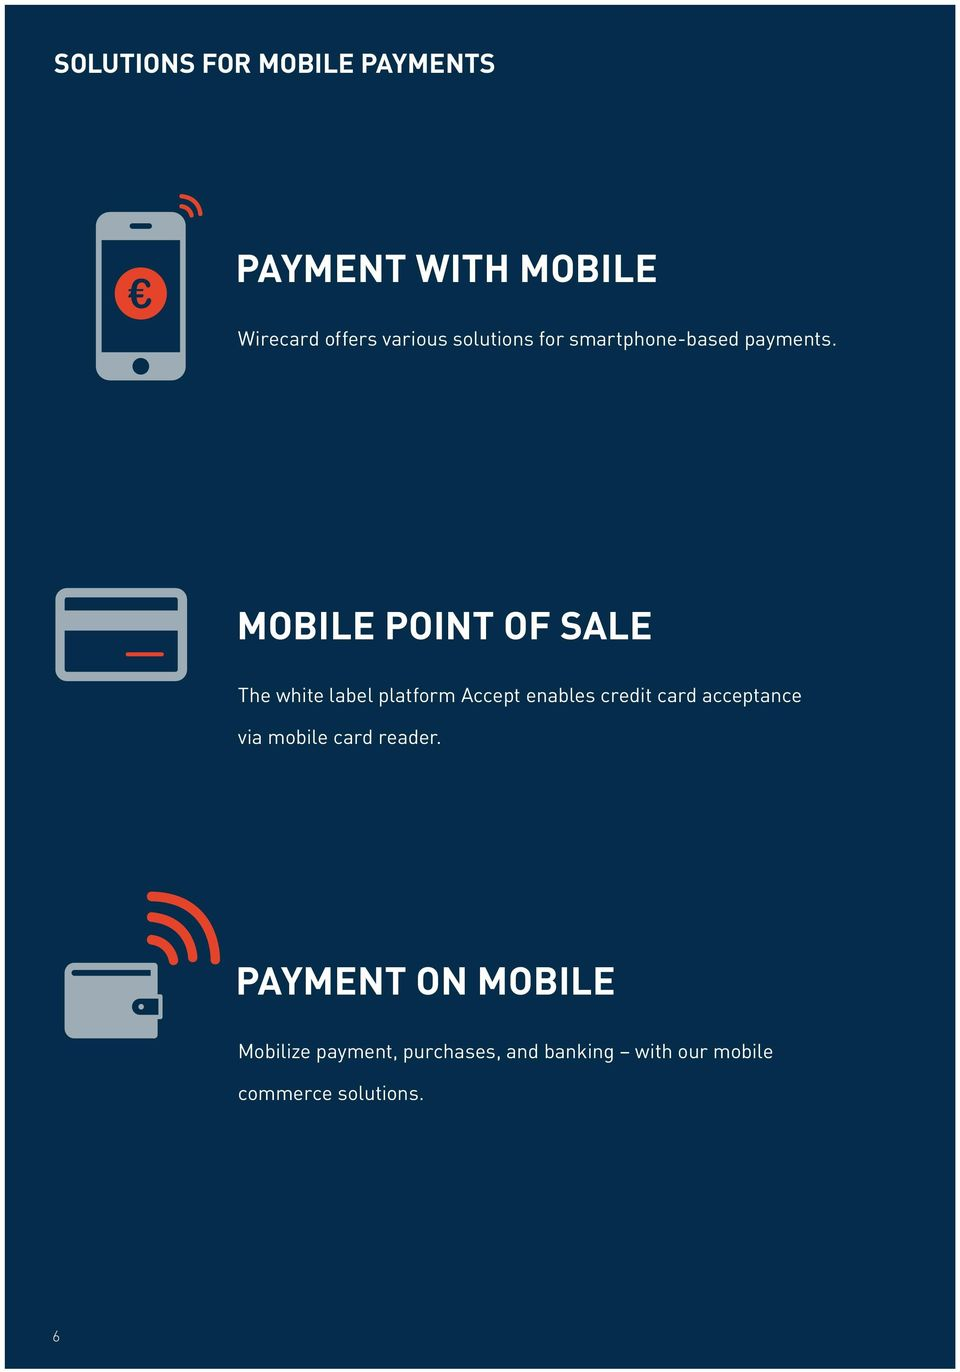 MOBILE POINT OF SALE The white label platform Accept enables credit card